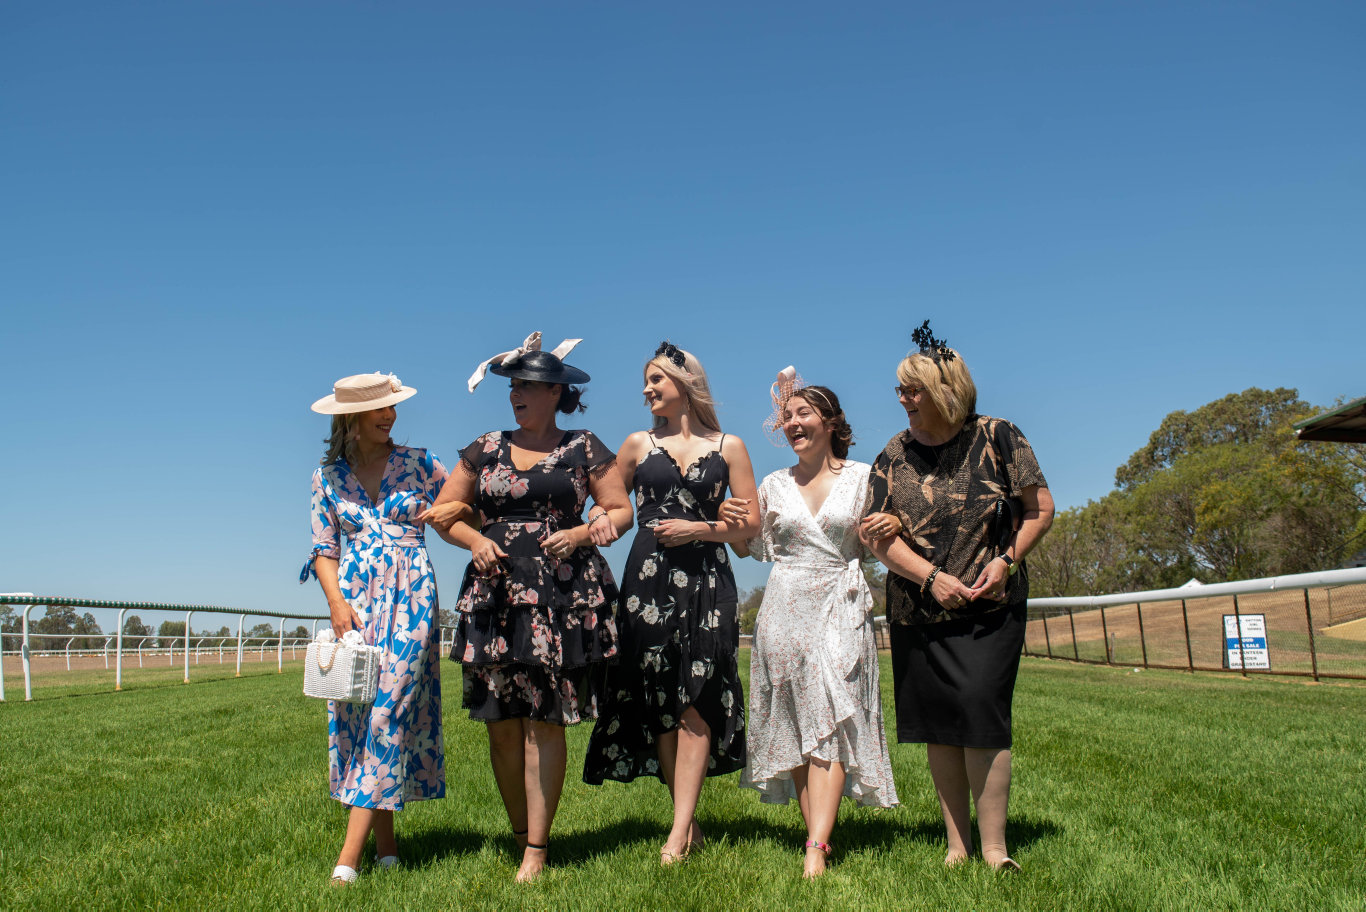 Chantelle Cameron, Tammy-Lee Spicer, Alisha, Emily Hallas and Michele Linde at the Lockyer Valley Turf Club's Oaks Race Day, 2019.